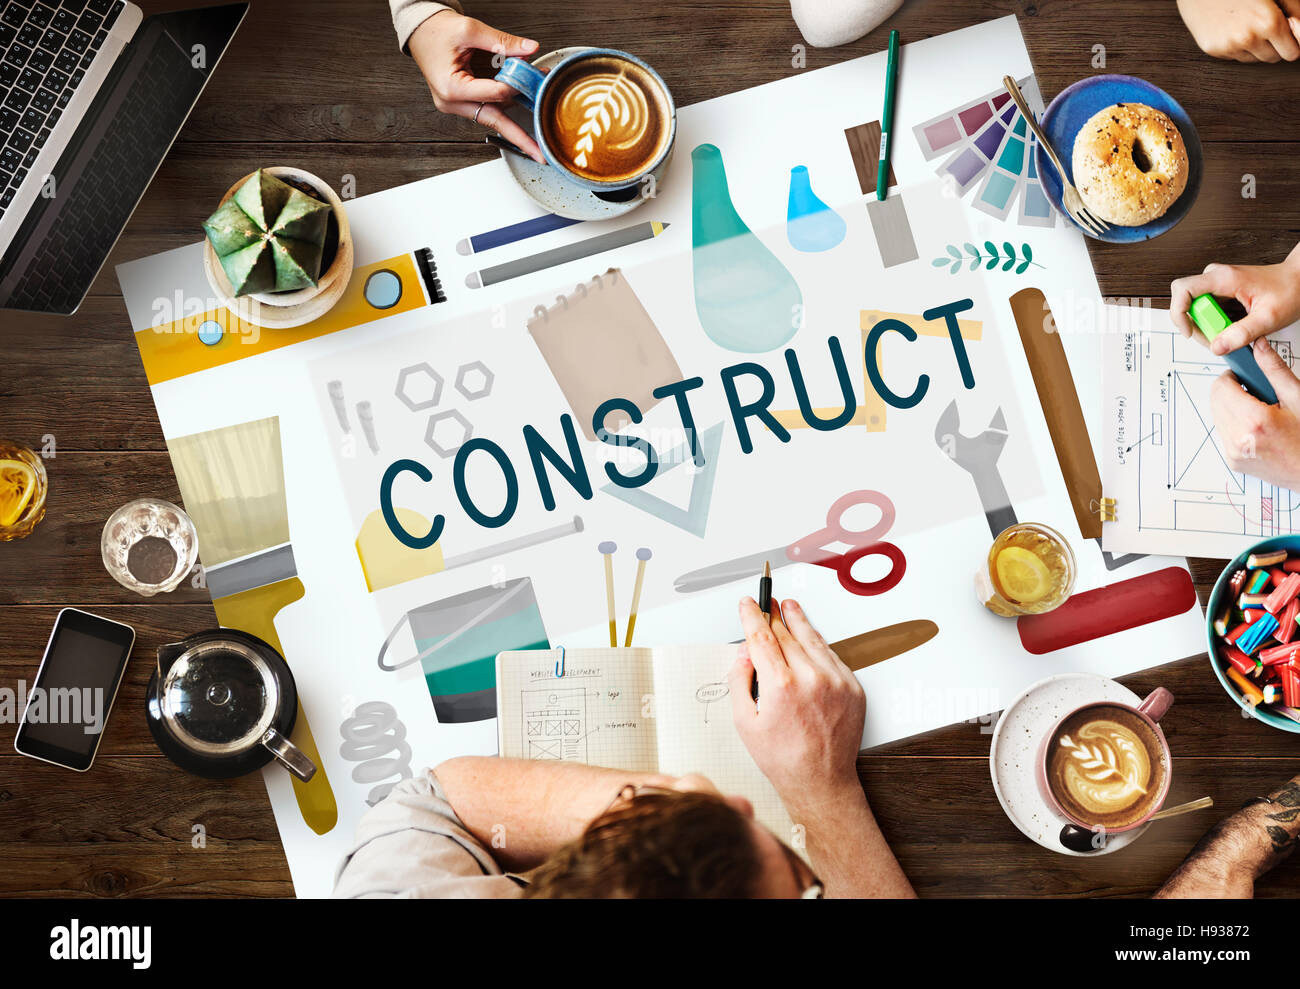 Construct Construction Equipment Architect Concept - Stock Image